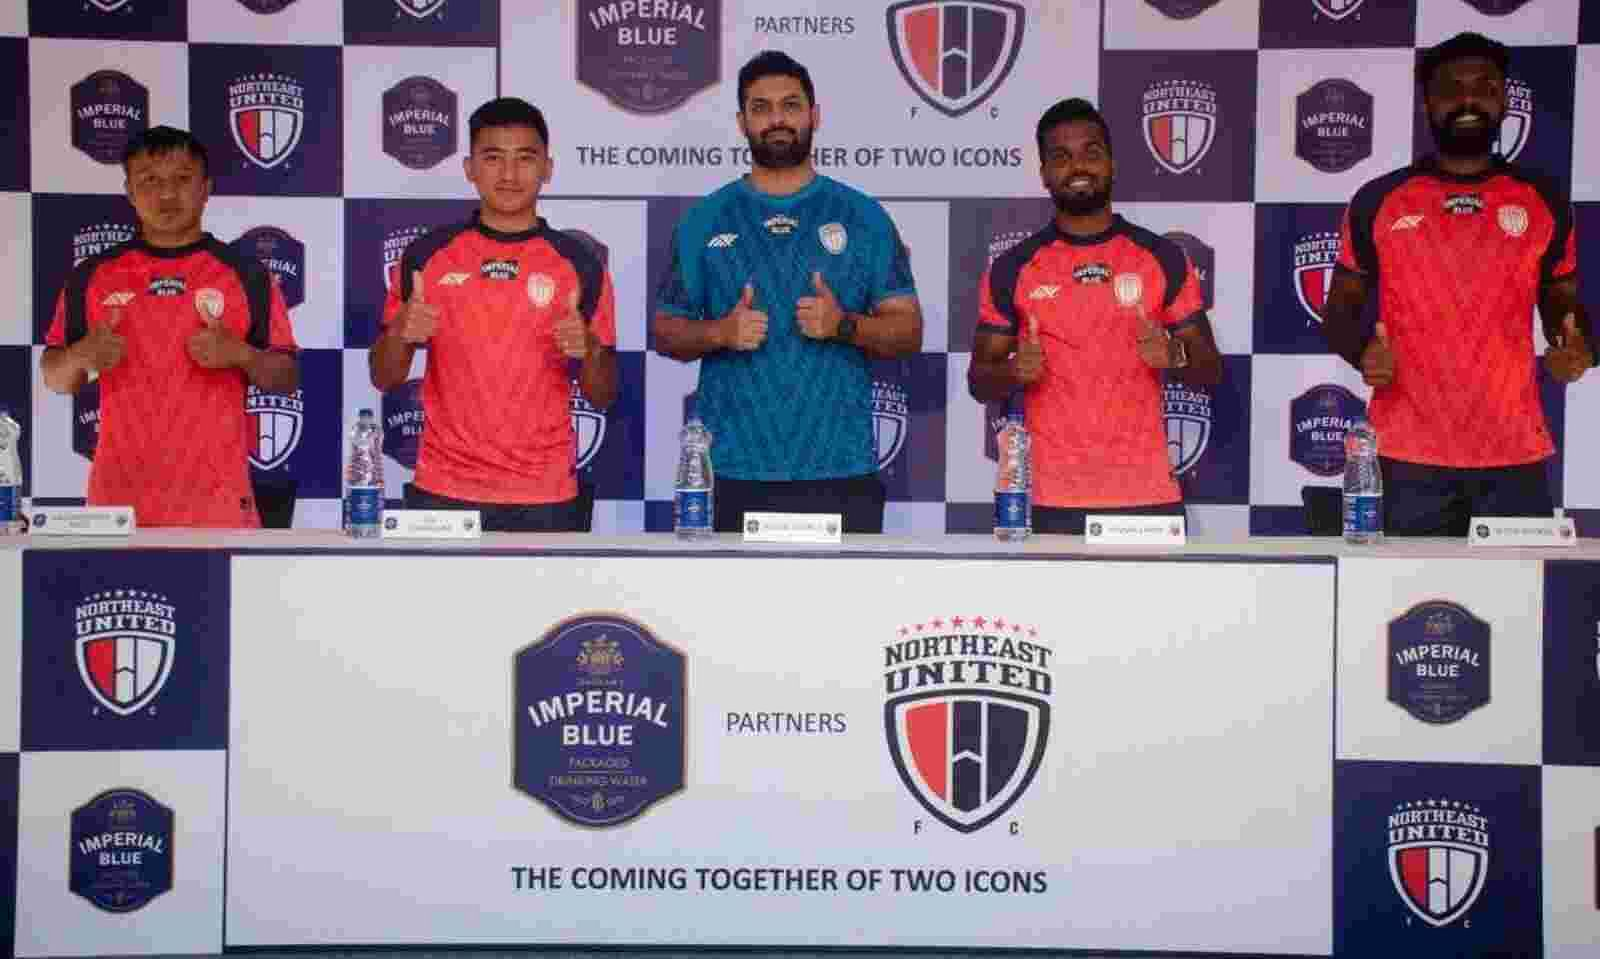 Seagram's Imperial Blue partners with Northeast United FC ahead of ISL season